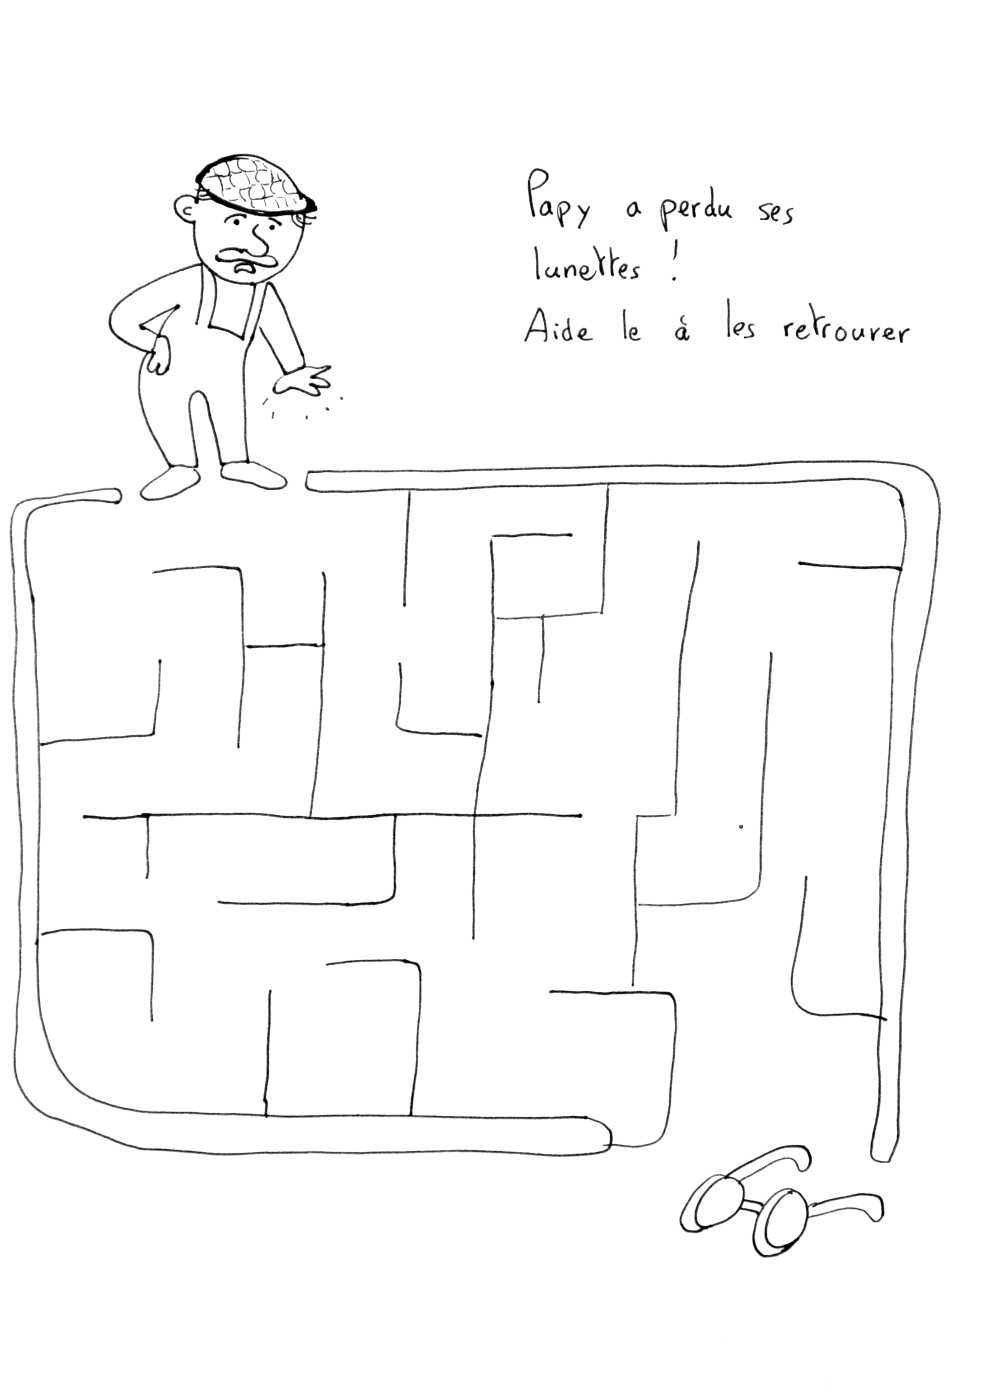 Simple Labyrinths coloring page to download for free : Help this man finding his glasses